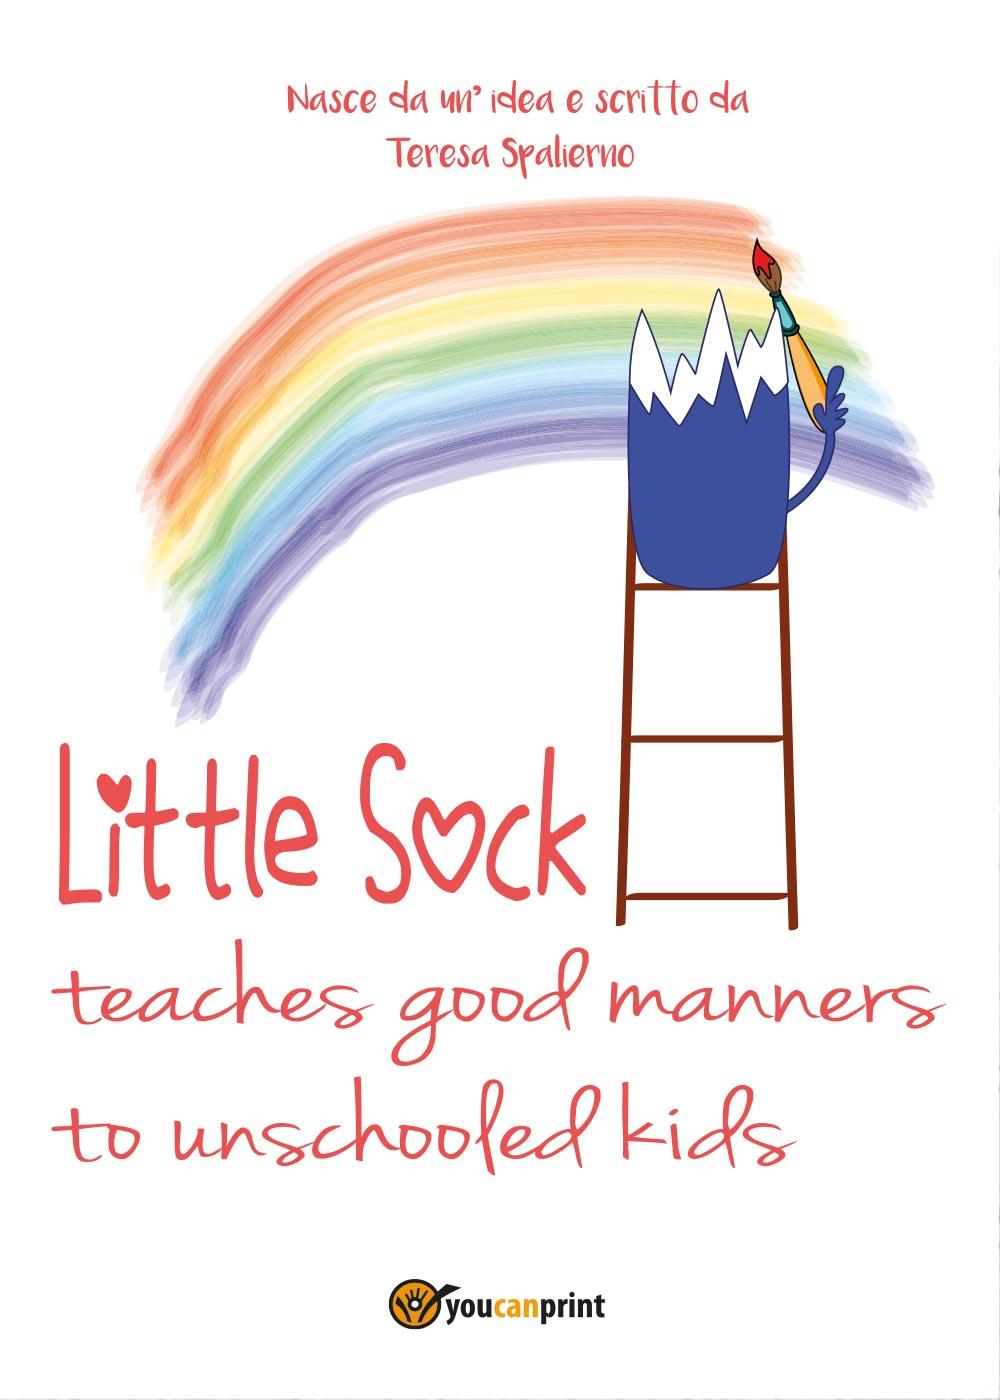 Little sock teaches good manners to unschooled kids